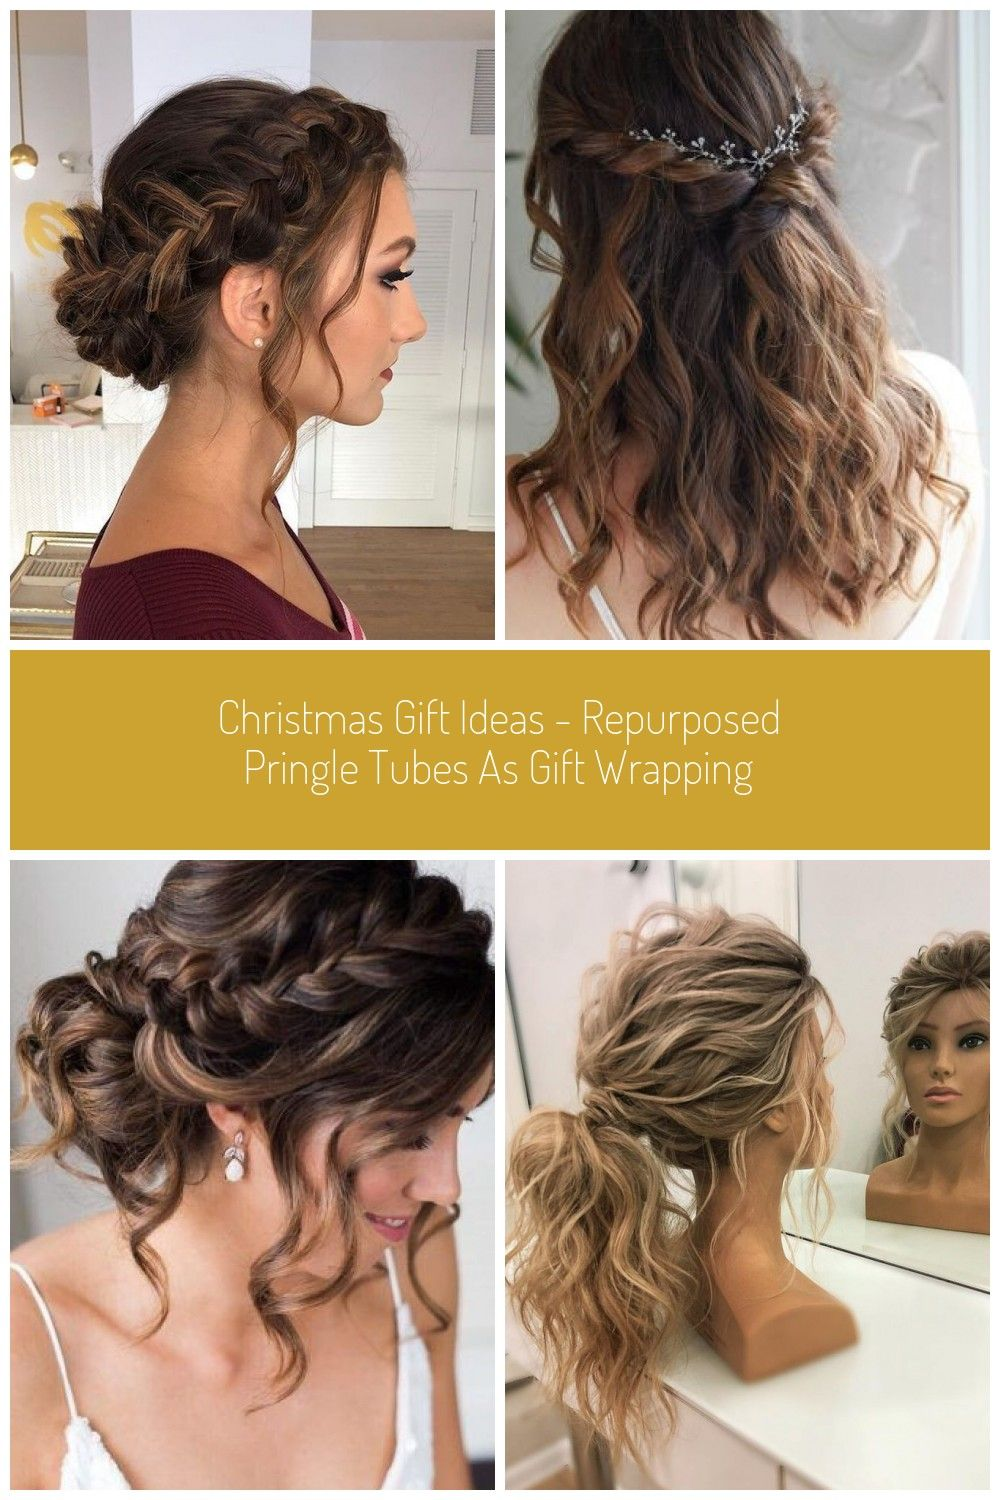 Christmas Gift Ideas Repurposed Pringle Tubes As Gift Wrapping In 2020 Hair Garland Hair Styles Floral Hair